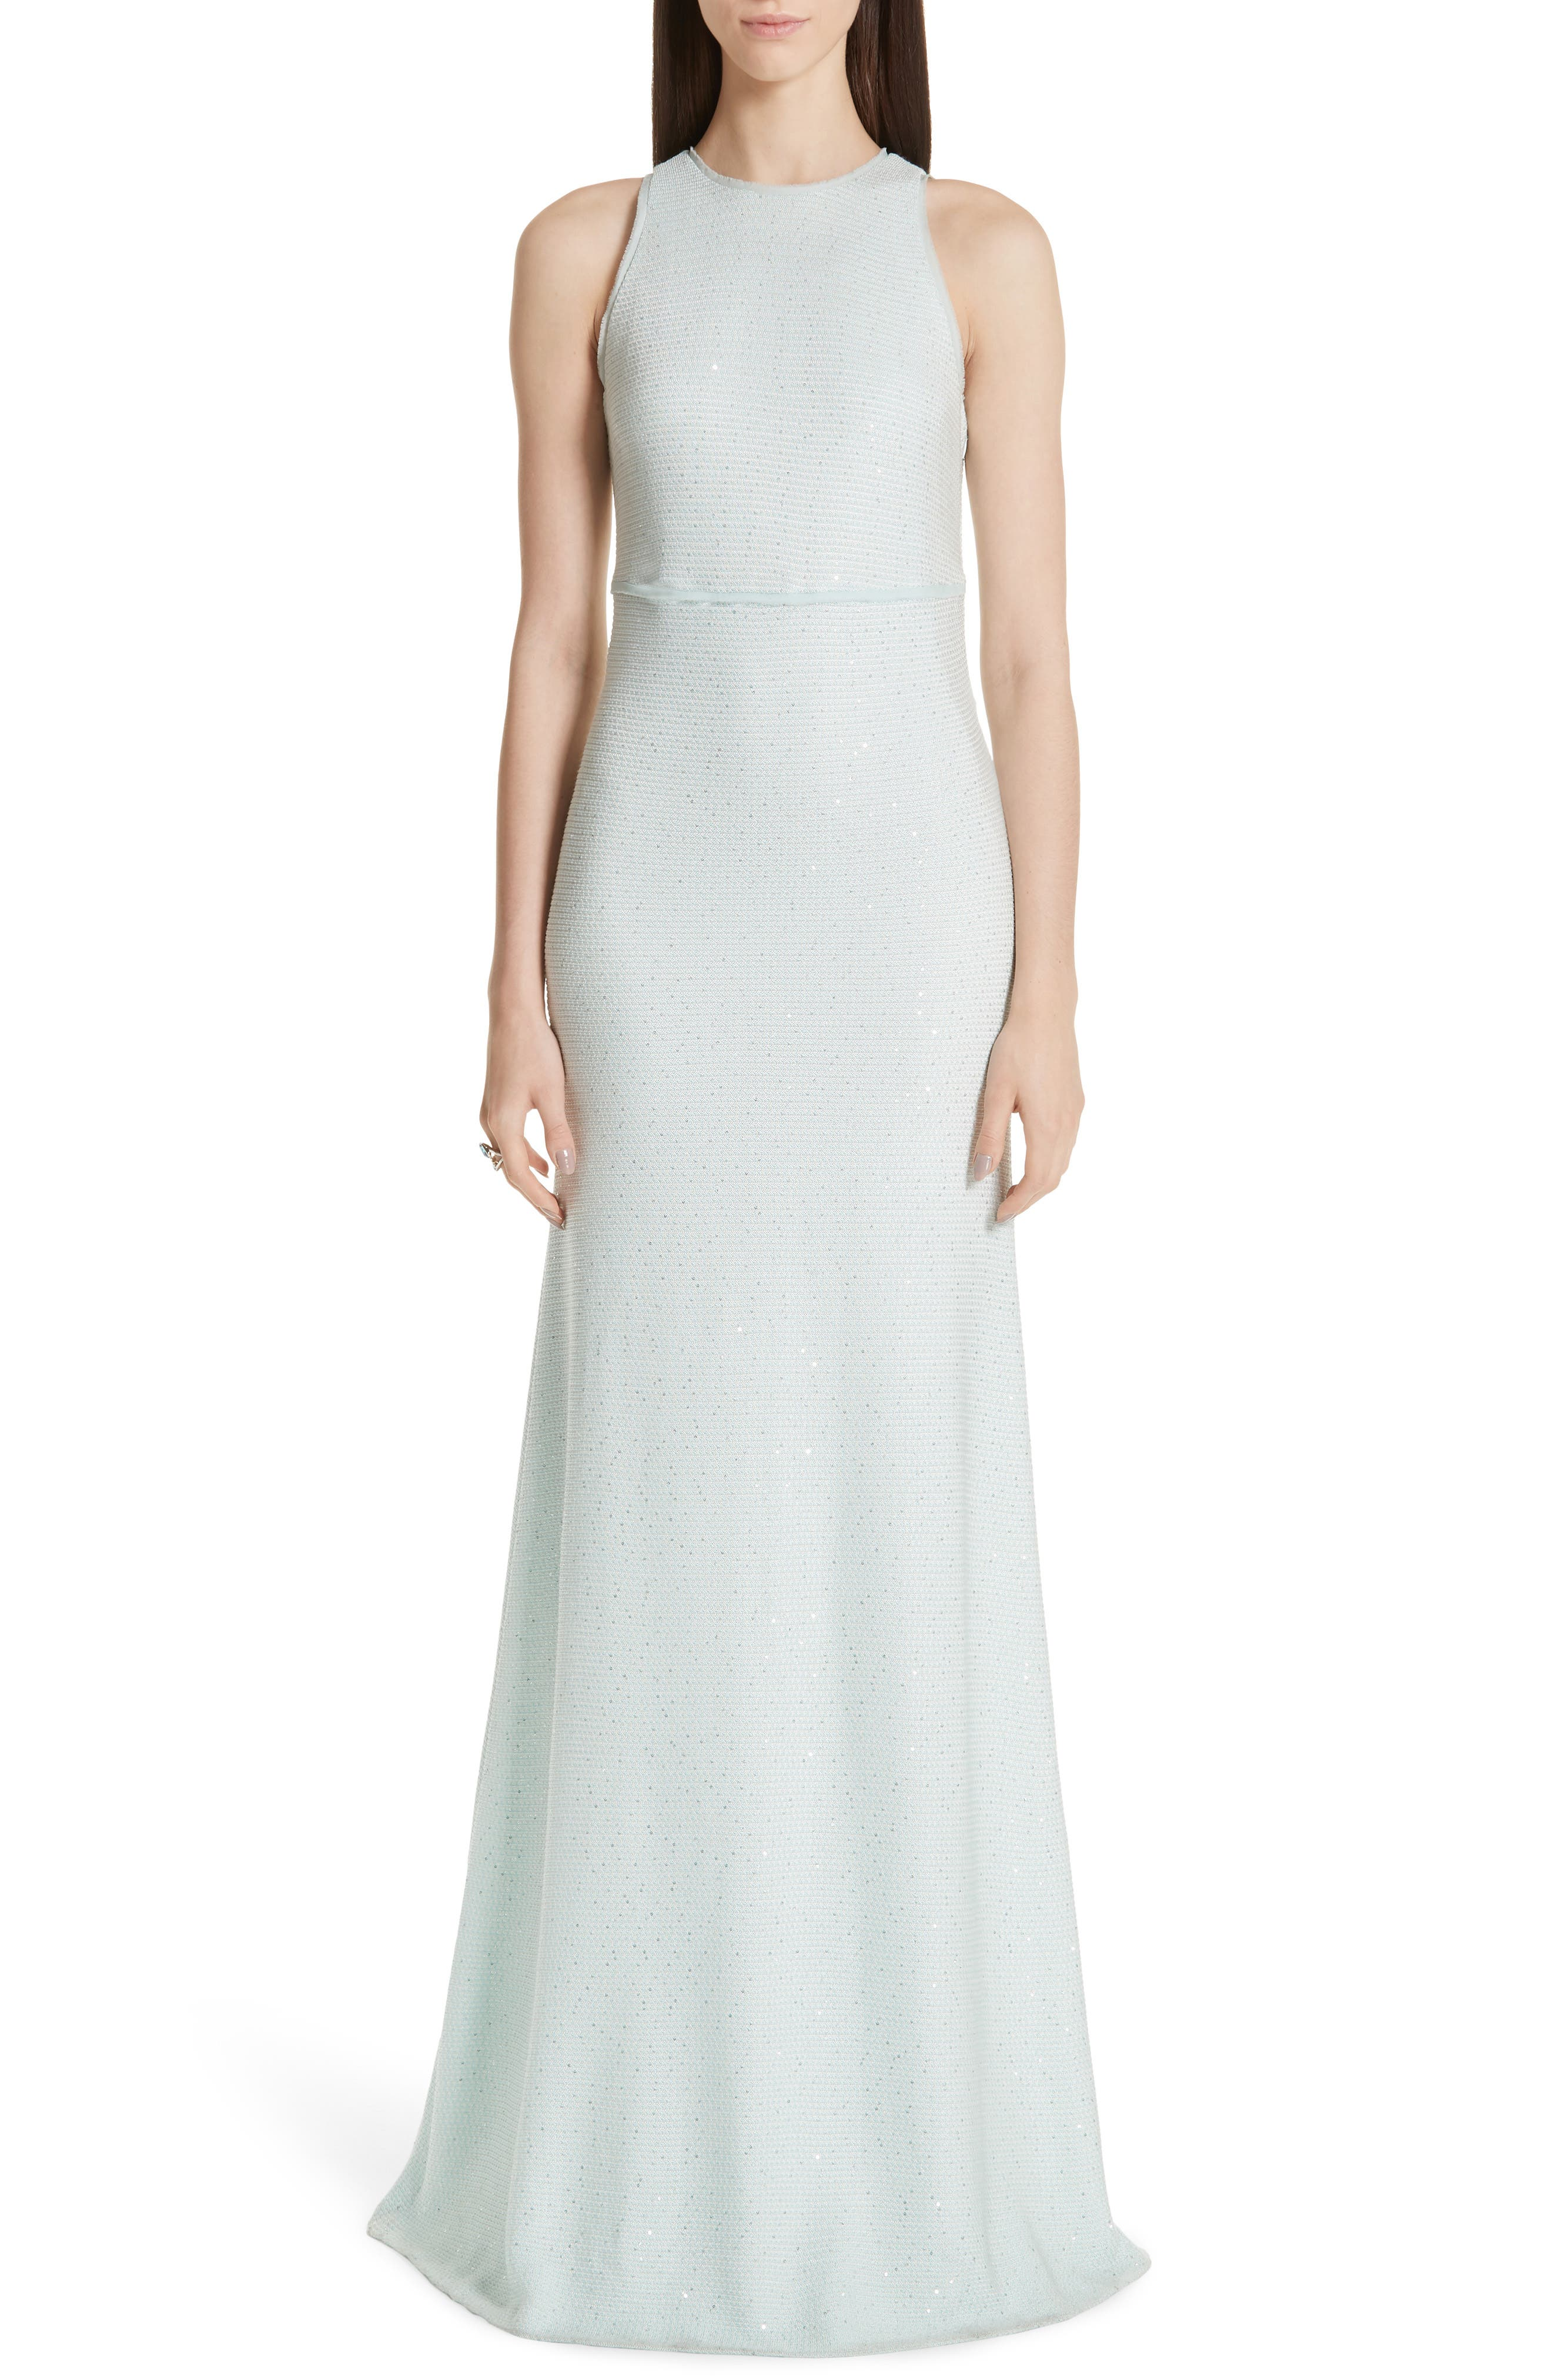 ST. JOHN COLLECTION Links Sequin Knit Gown, Main, color, OPAL